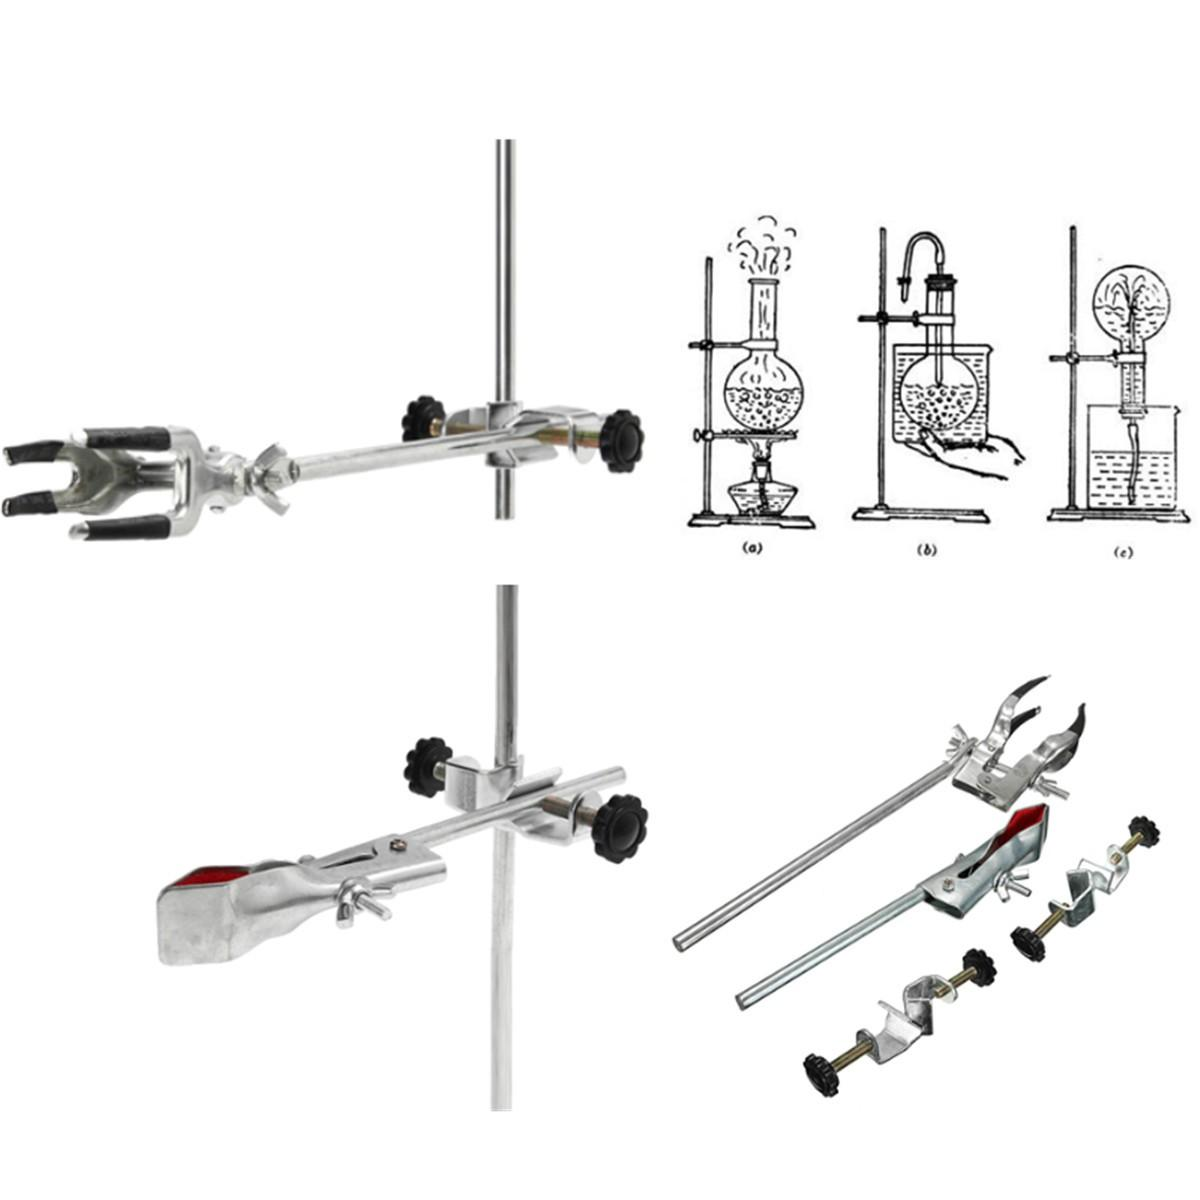 Laboratory Stands Support Lab Clamp Flask Clamp Condenser